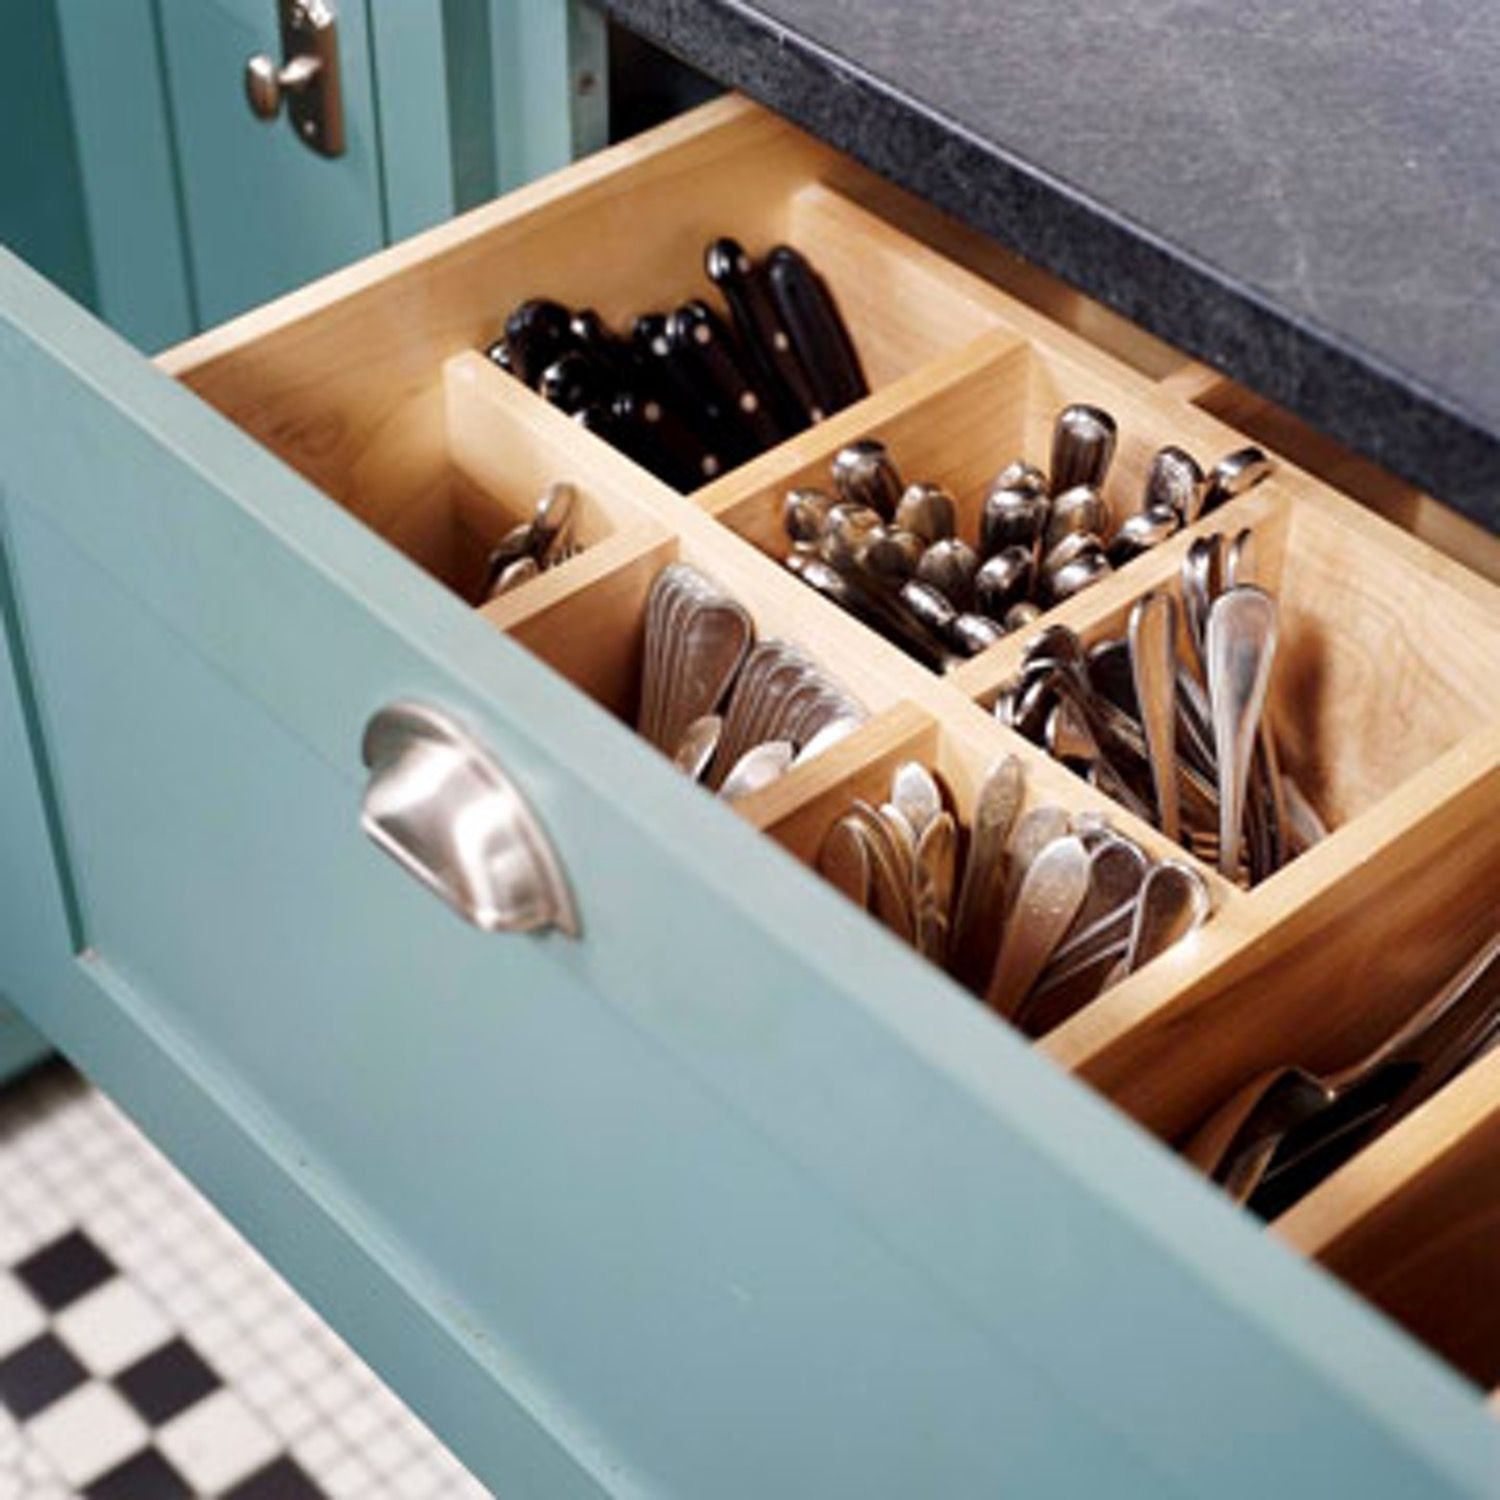 Vertical Silverware This Solution Makes The Organizer Inside All Of